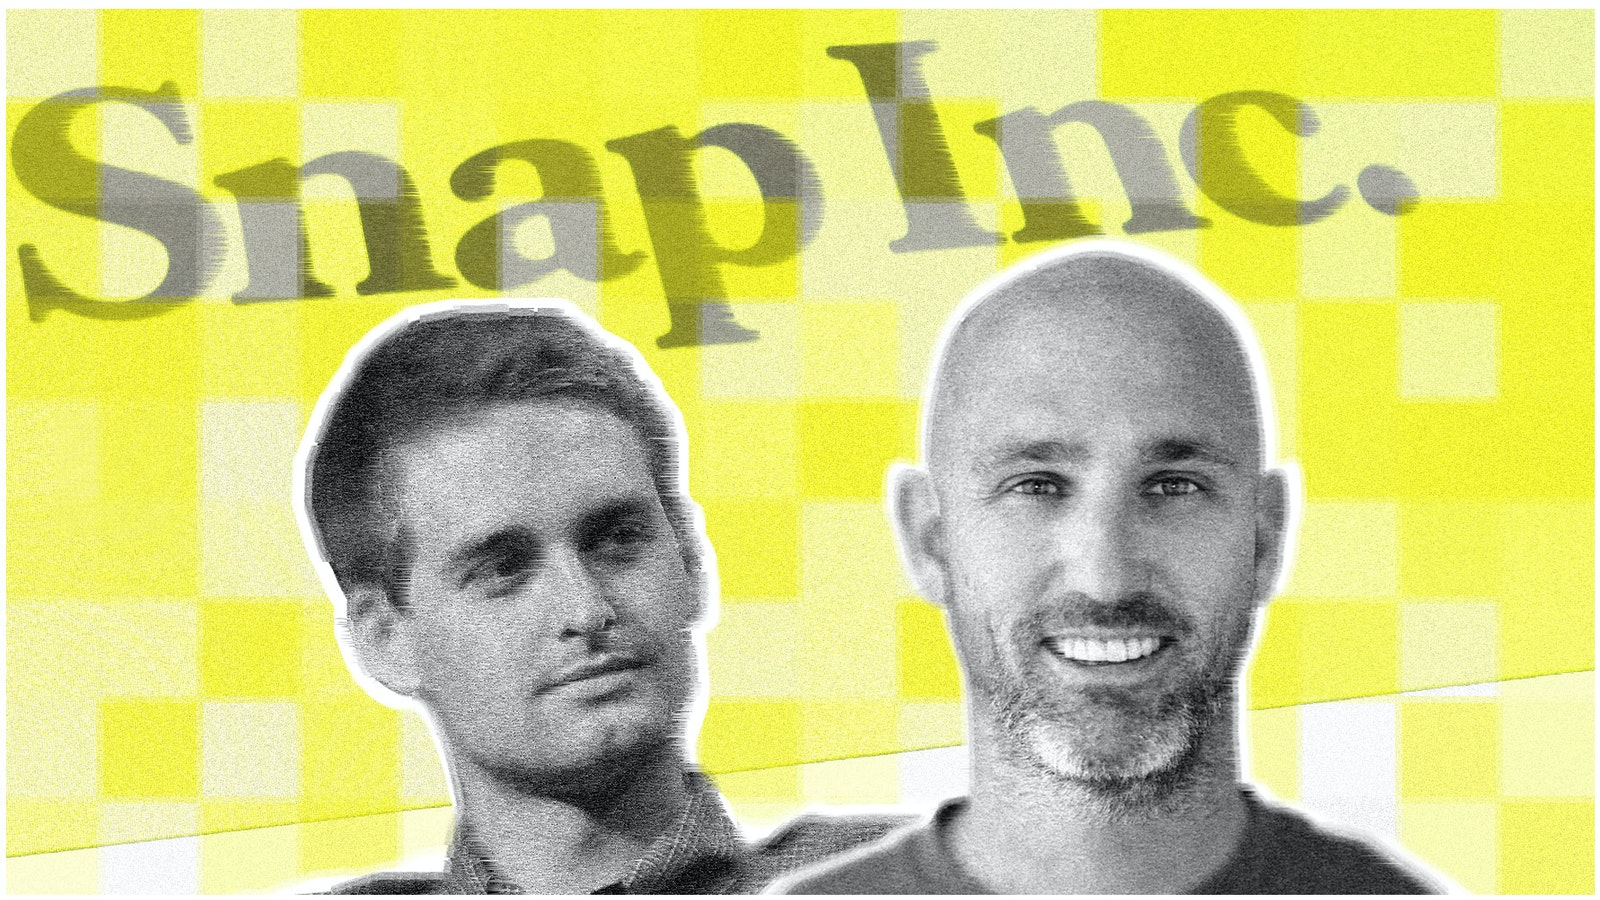 Snap CEO Evan Spiegel and People VP Jason Halbert. Art by Mike Sullivan